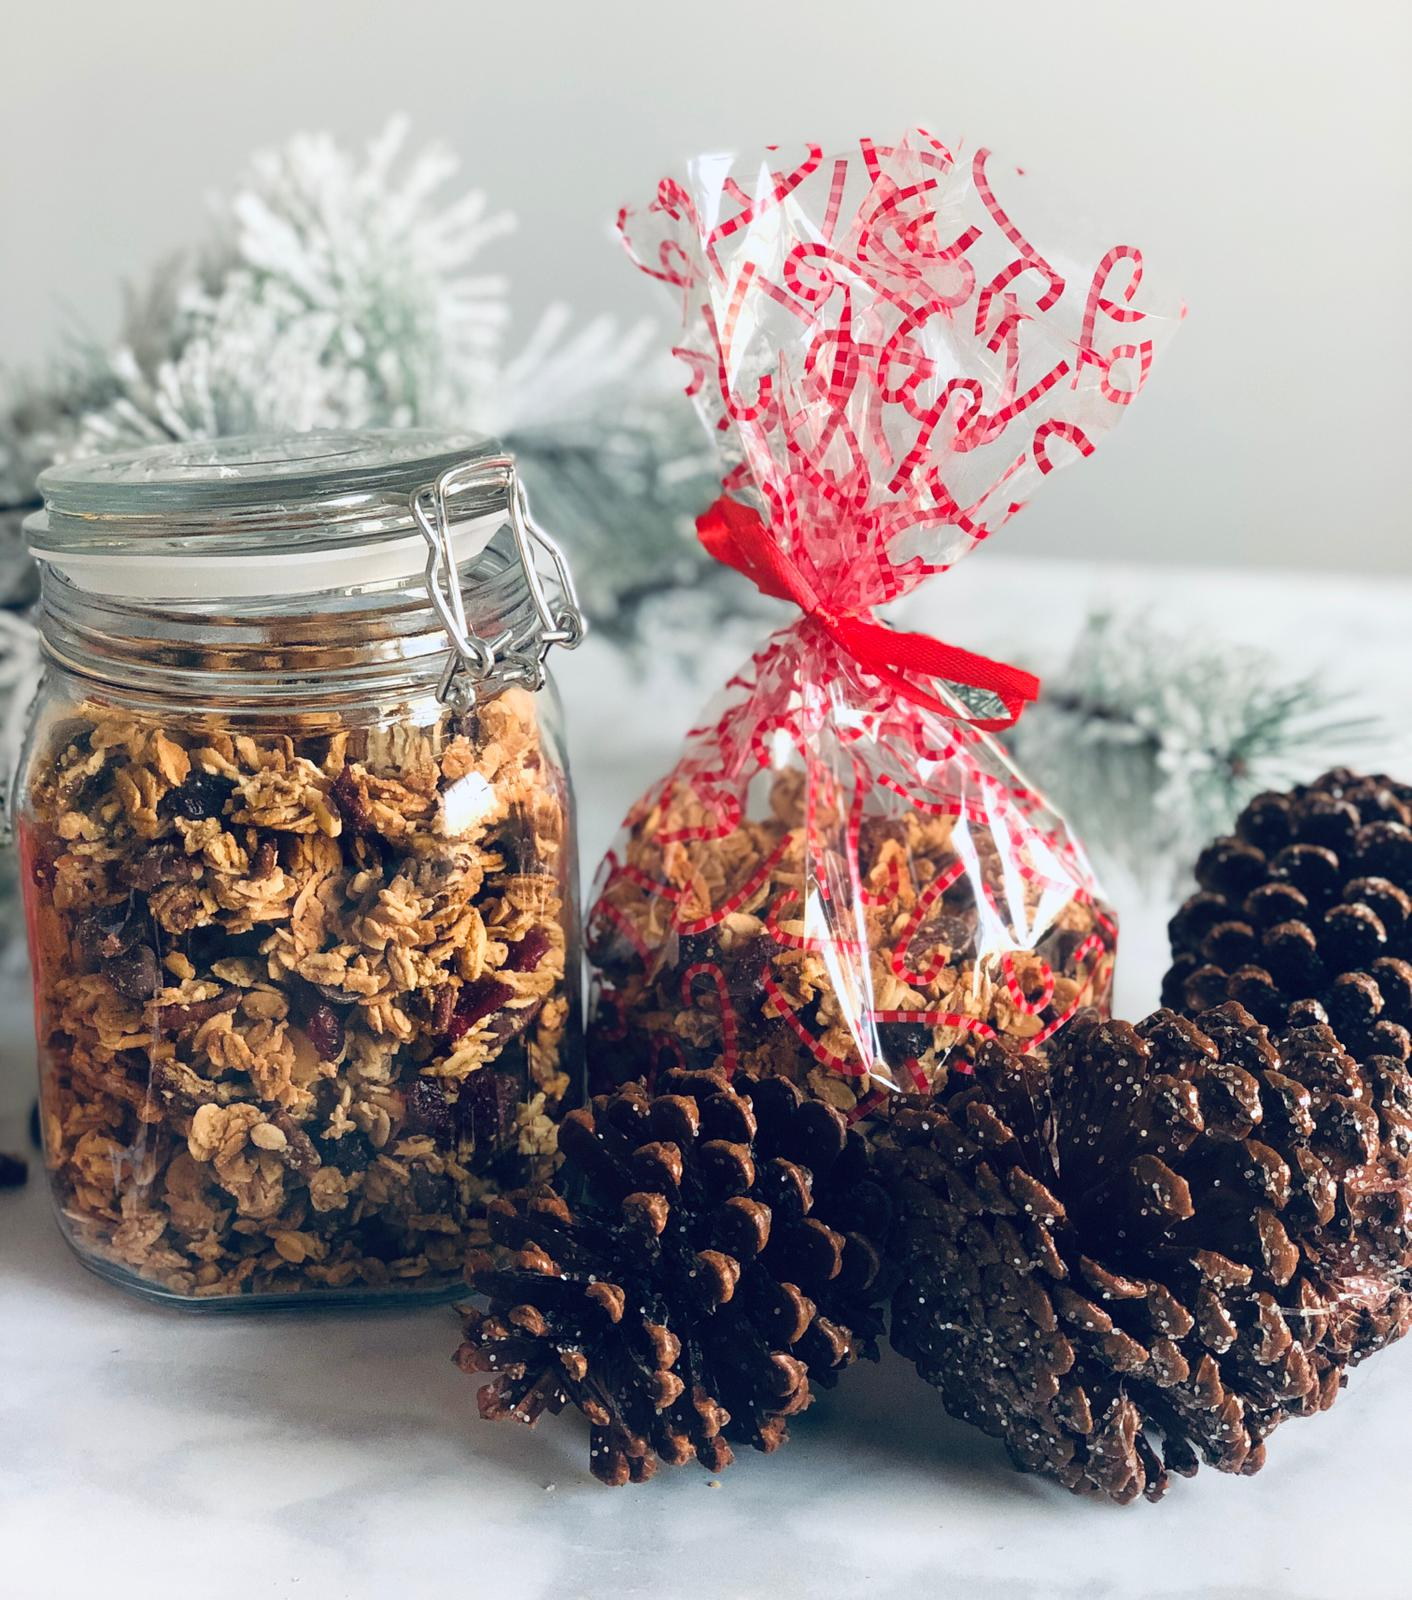 Cranberry & Chocolate Granola in gift bag